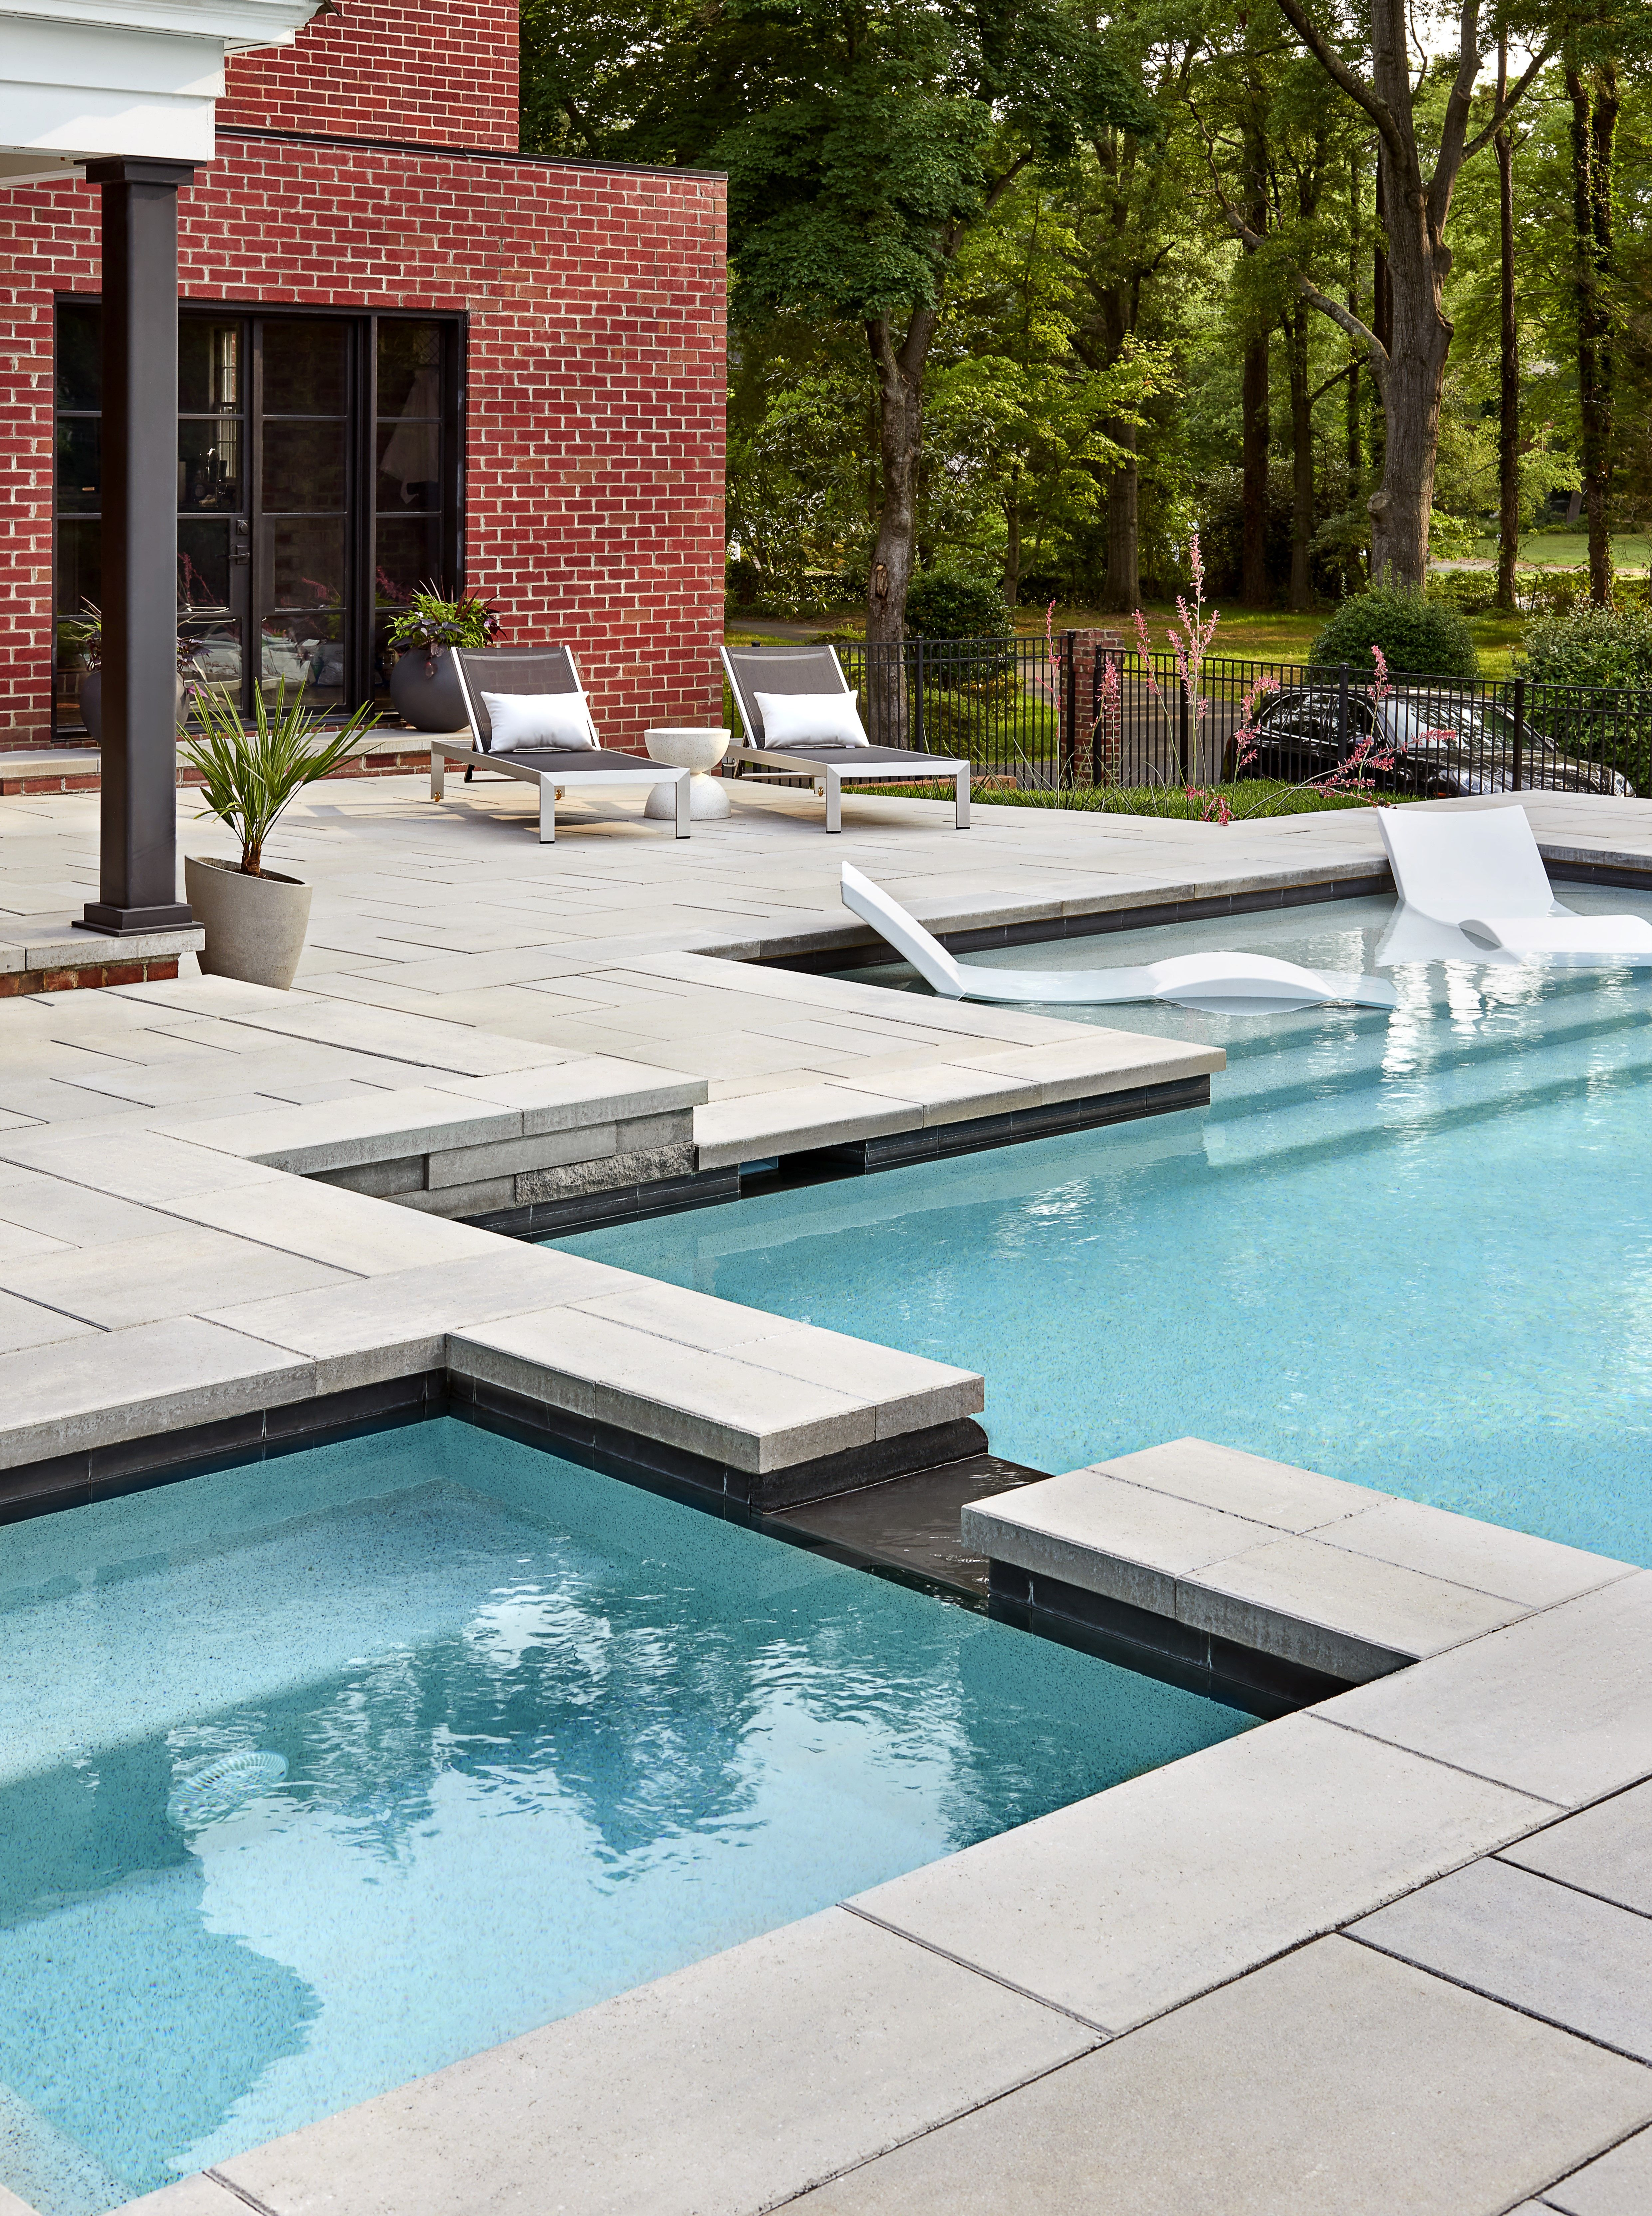 This Backyard Swimming Pool Design Is Inspired By Our Para Patio